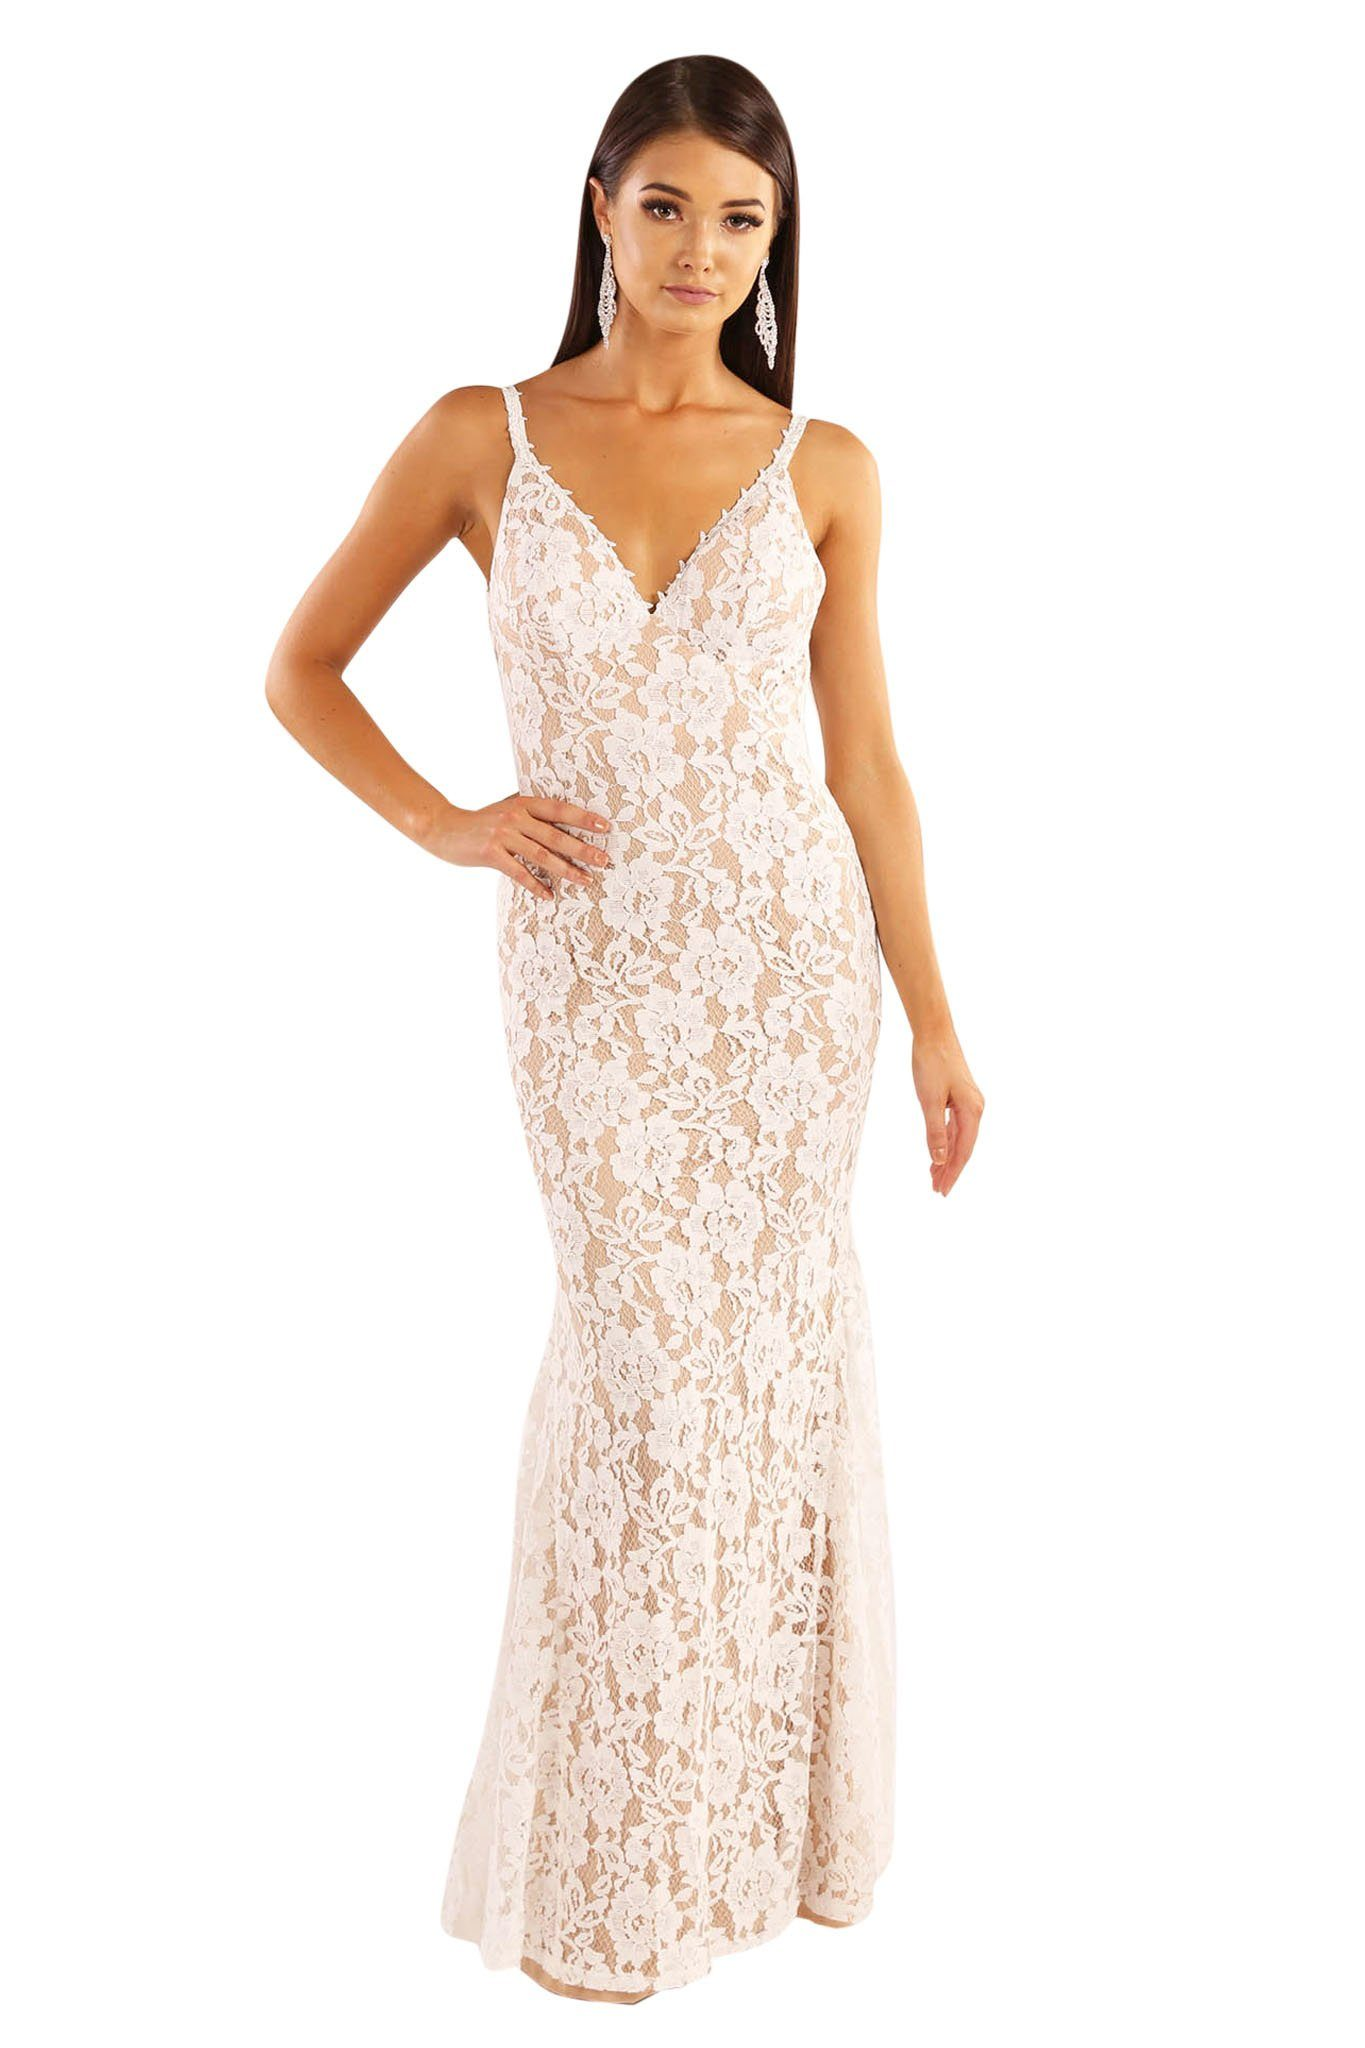 White sleeveless lace overlay with beige lining fitted maxi formal dress V neck, shoulder straps, V shaped backless design